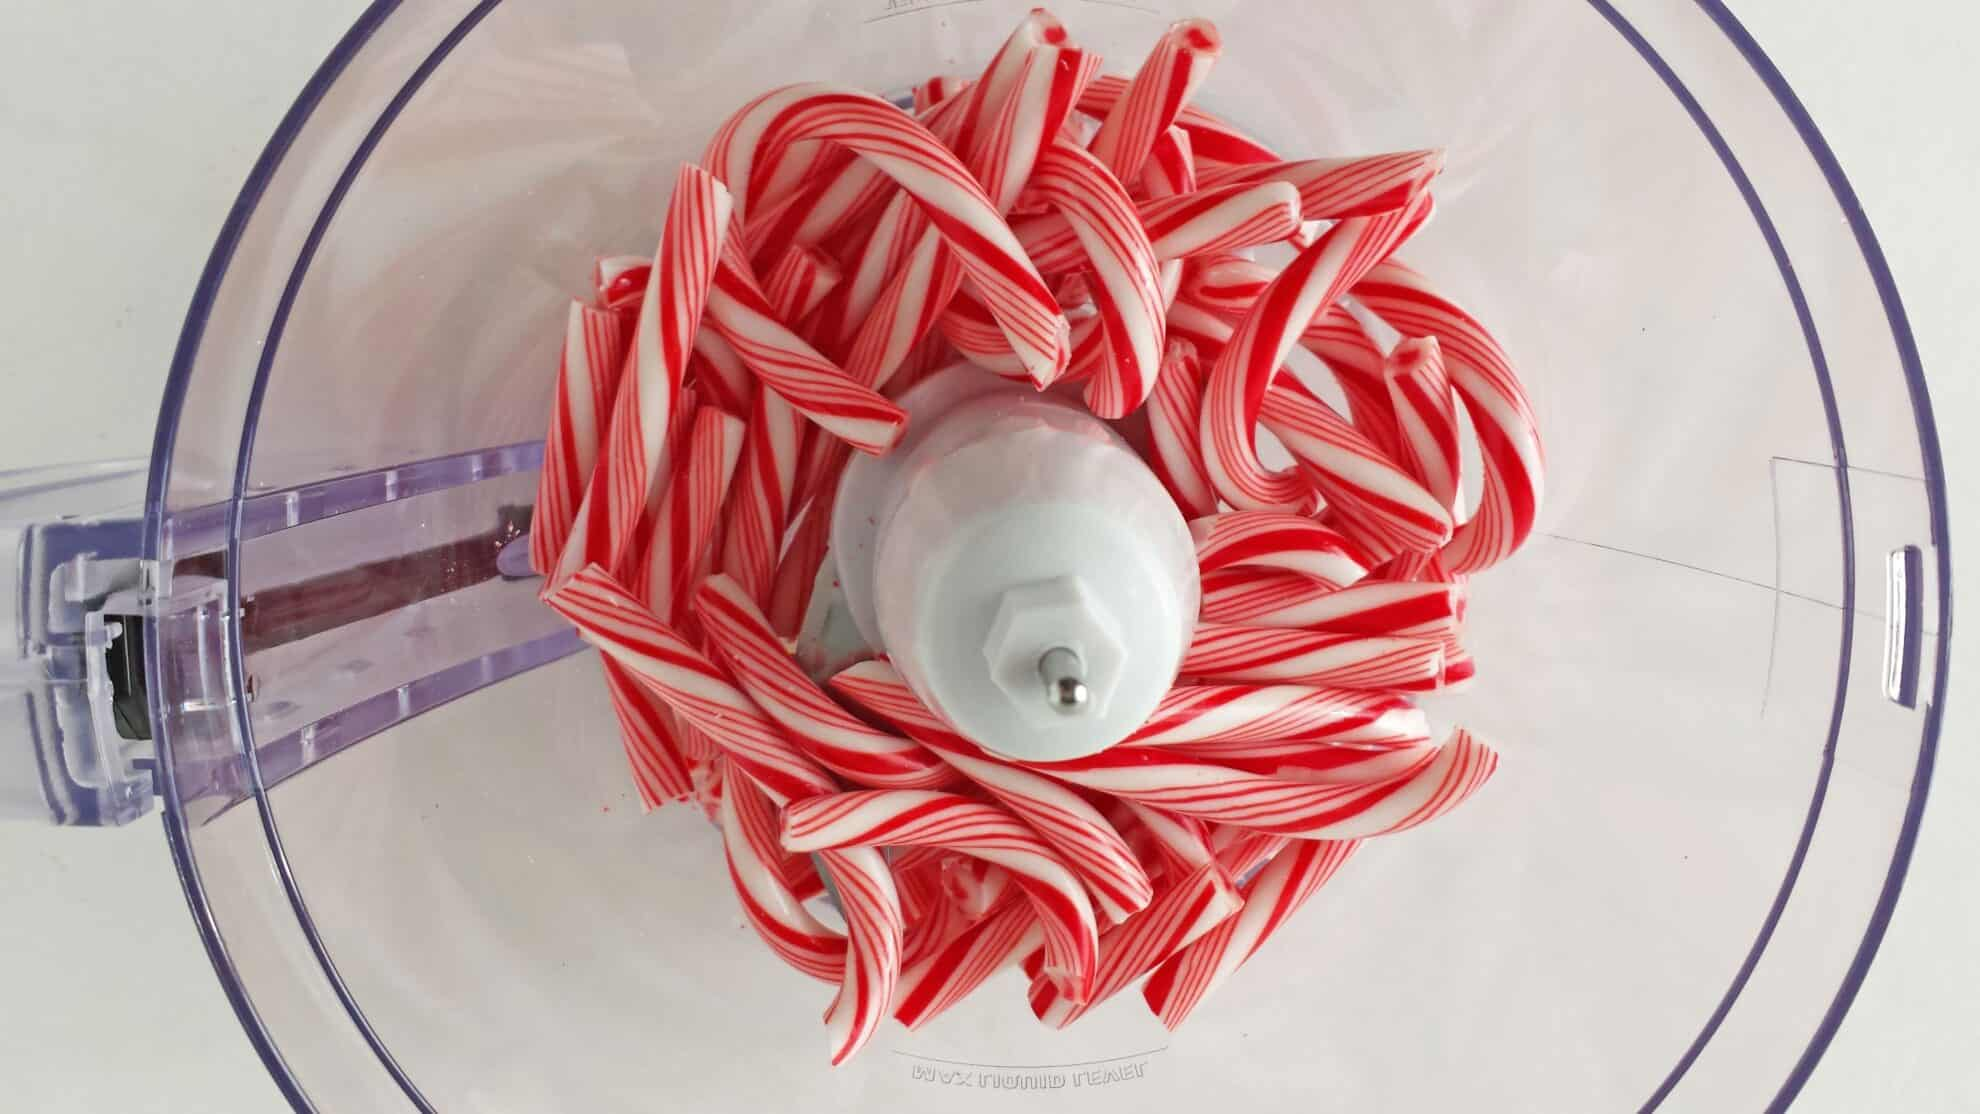 Crush candy canes in a food processor sift the candy canes into a